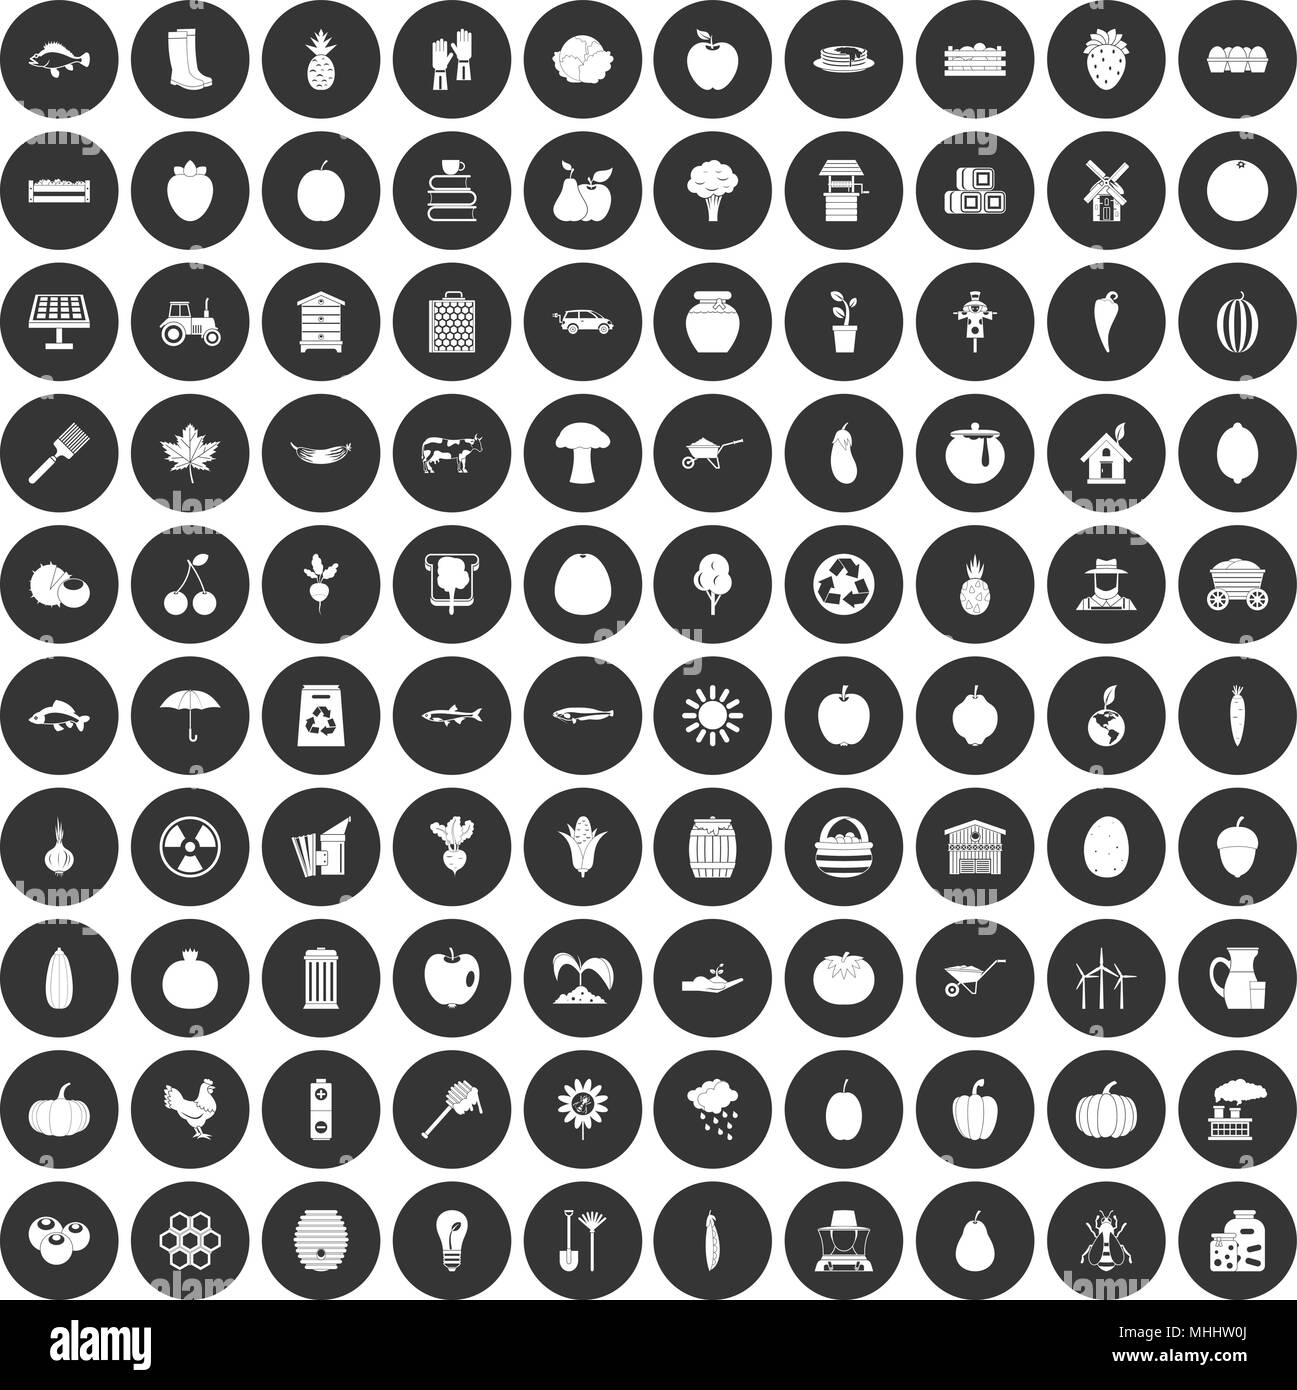 100 vitamins icons set black circle - Stock Image